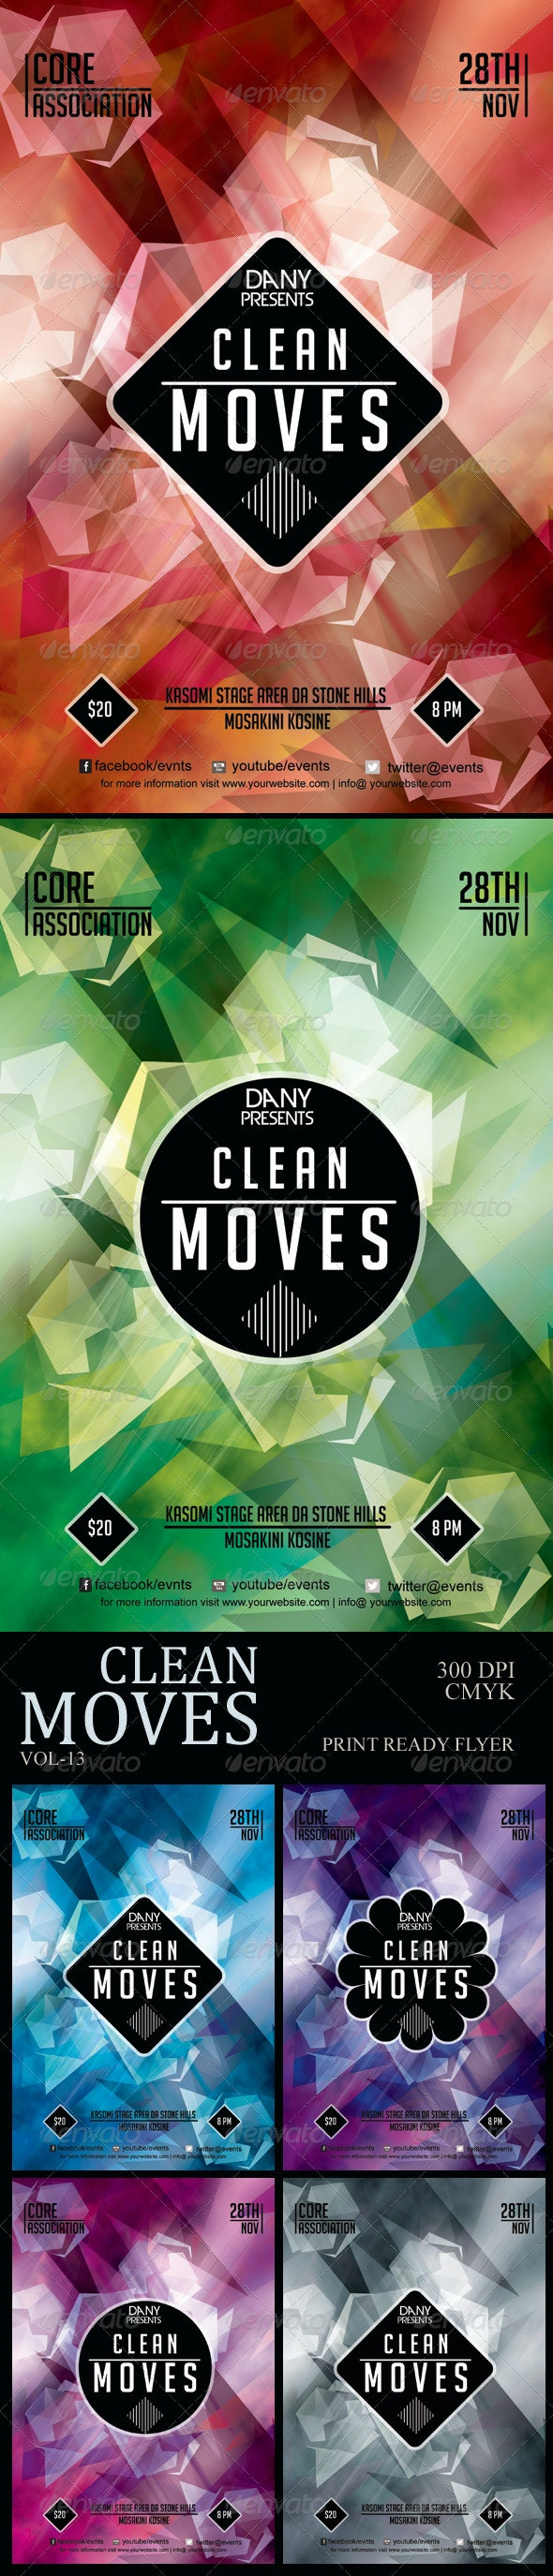 Clean Moves 13 Polygon Flyer - Clubs & Parties Events